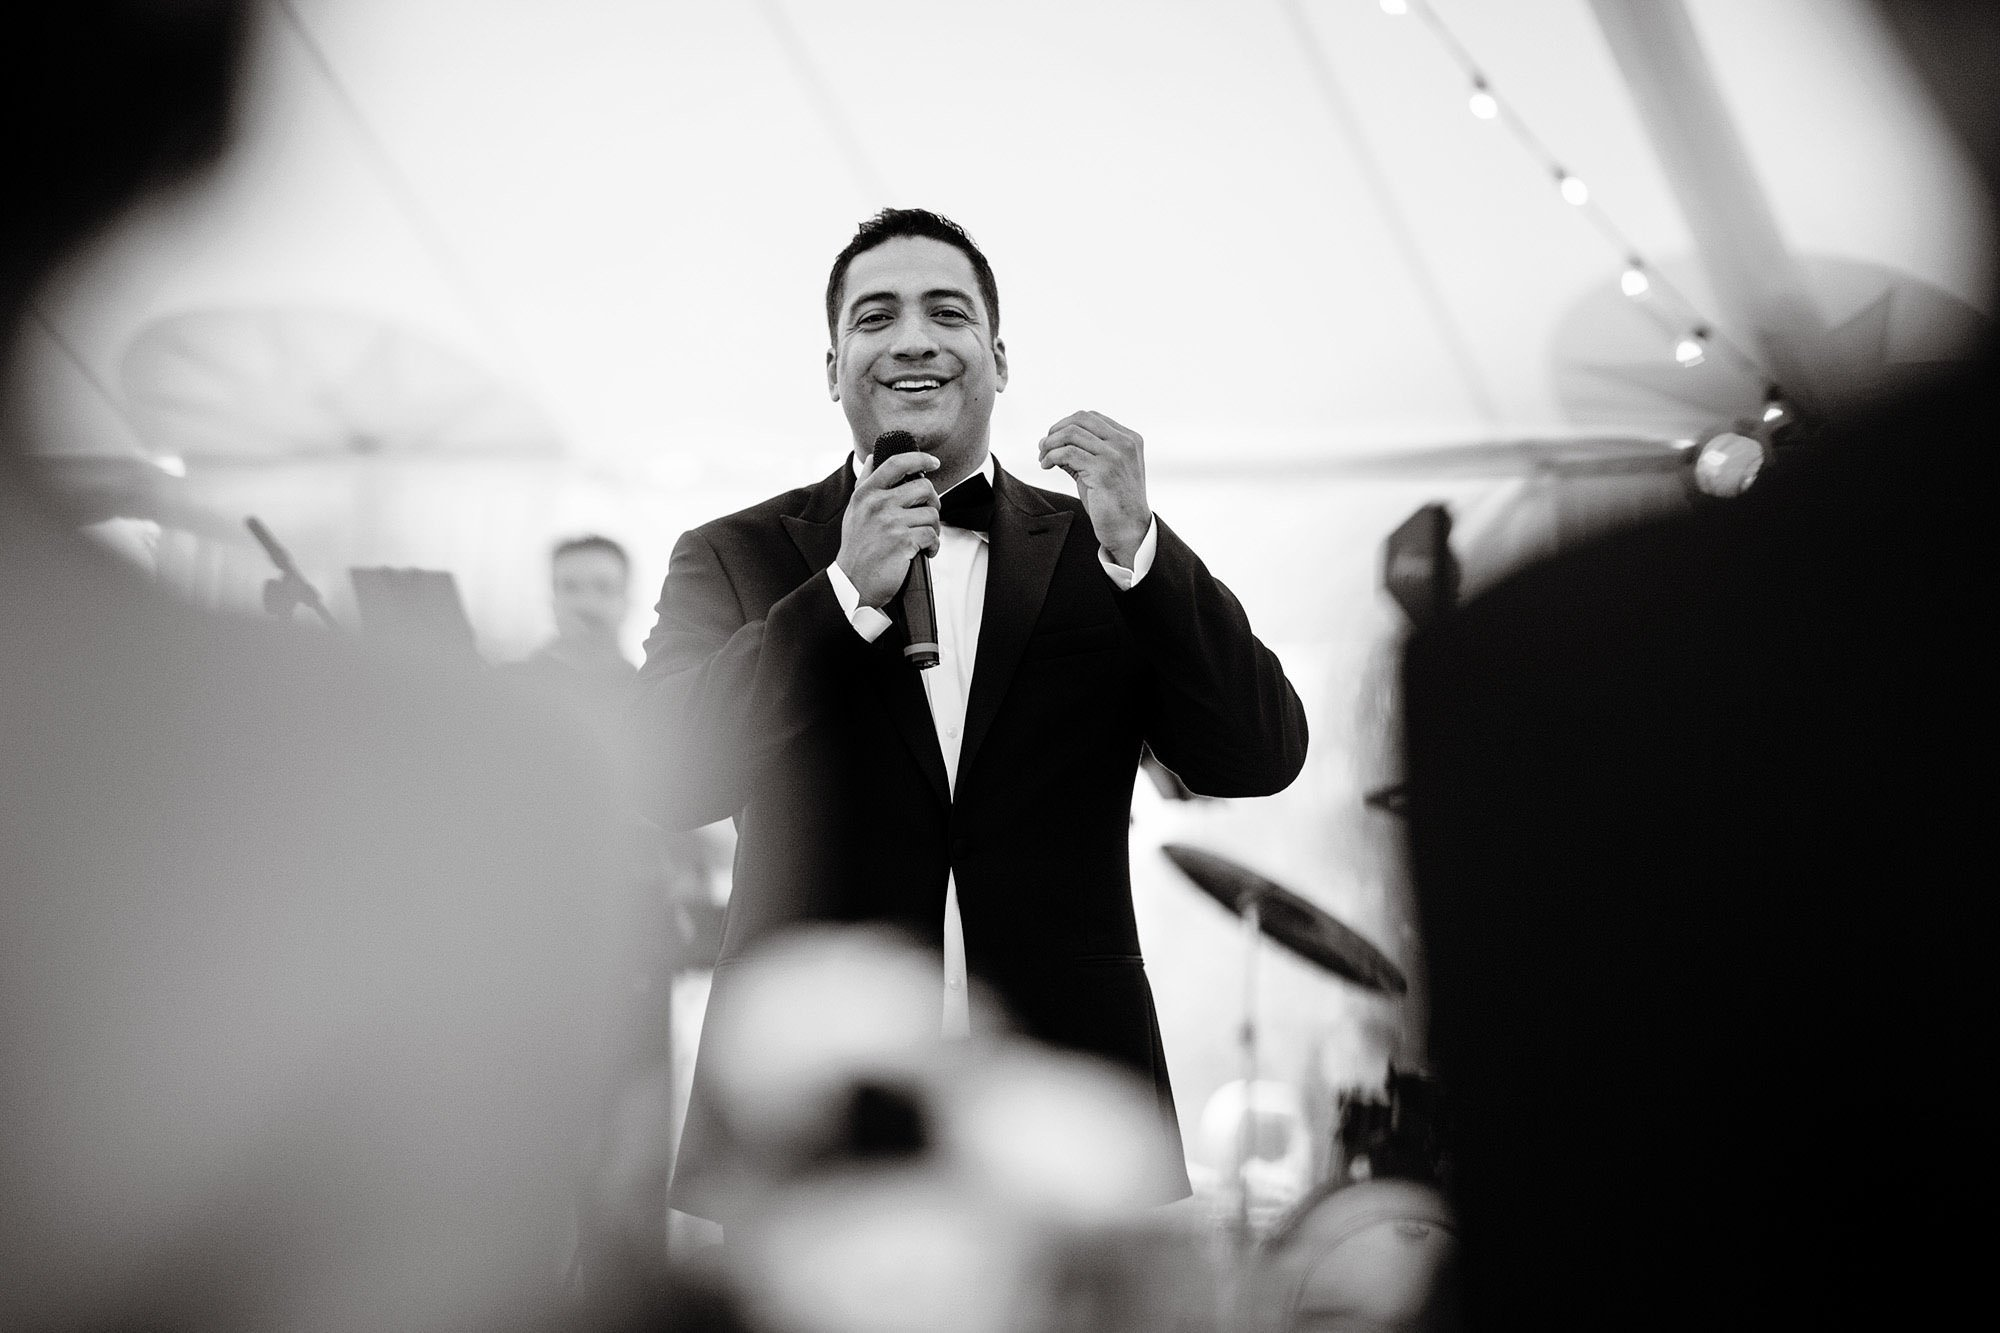 The Best Man gives a Toast.